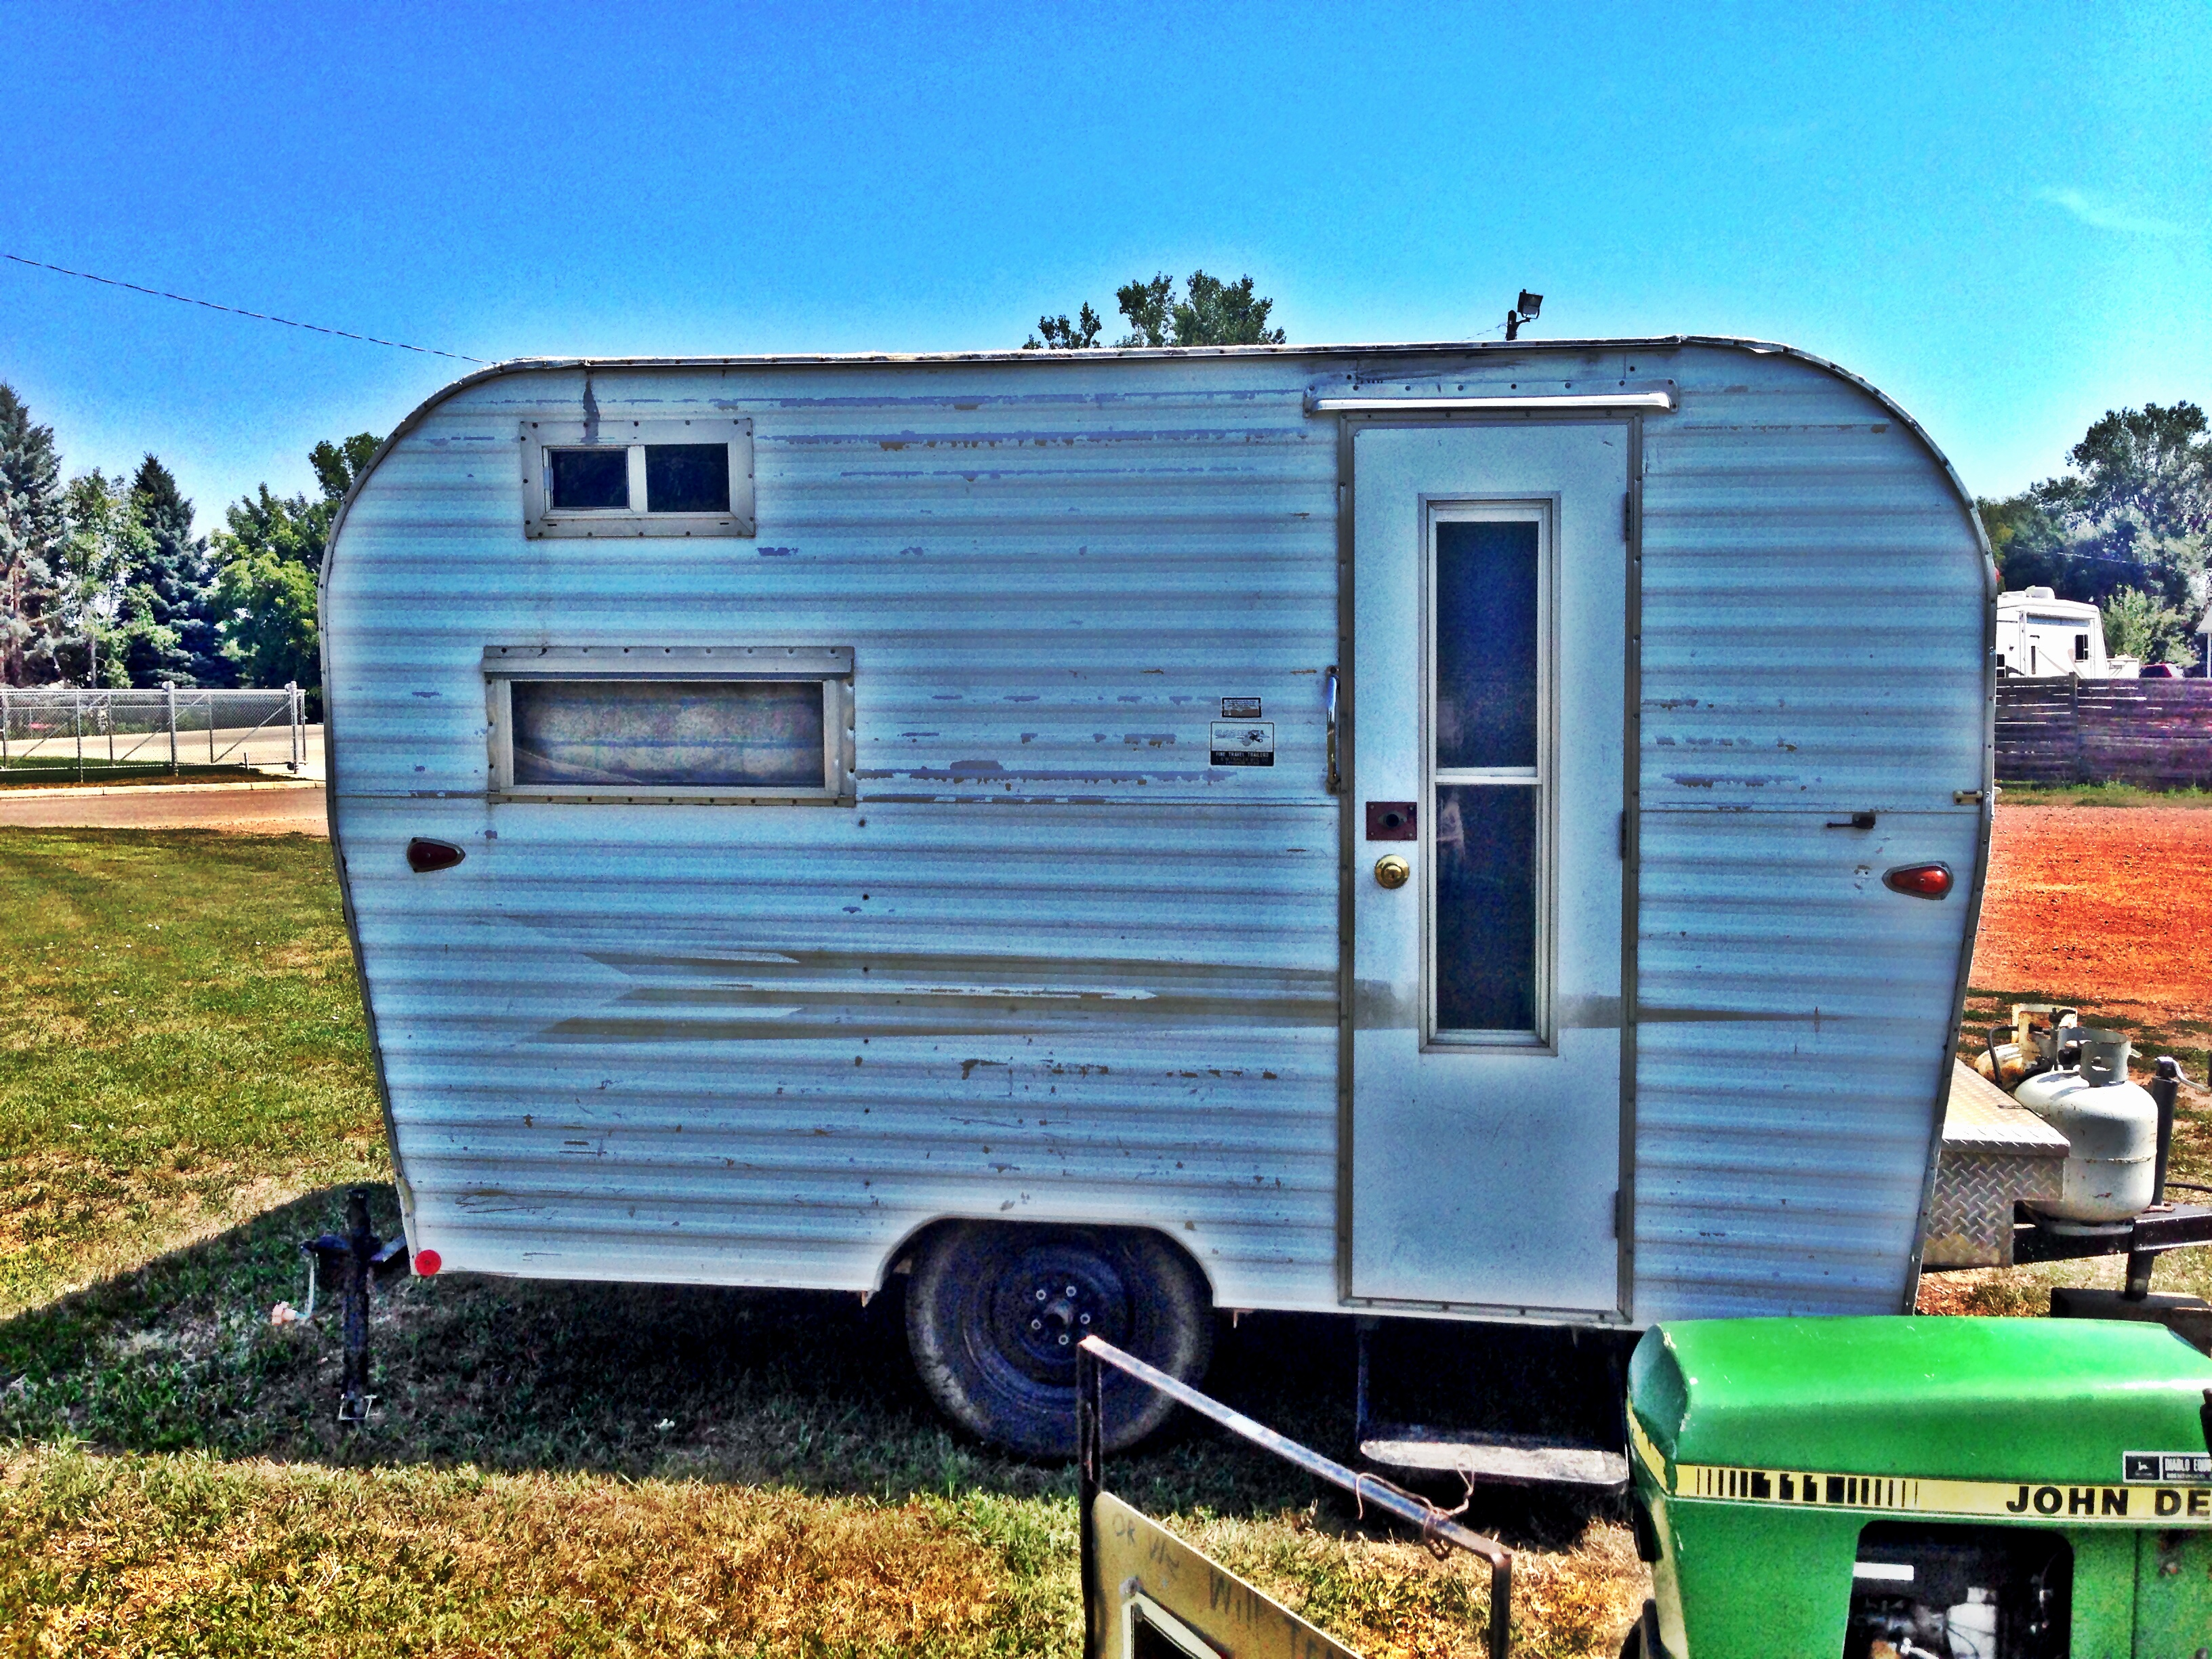 renovating a vintage 1969 roadrunner travel trailer ostrobogulous rh ostrobogulation com Trailer Frame Small Trailer Kits